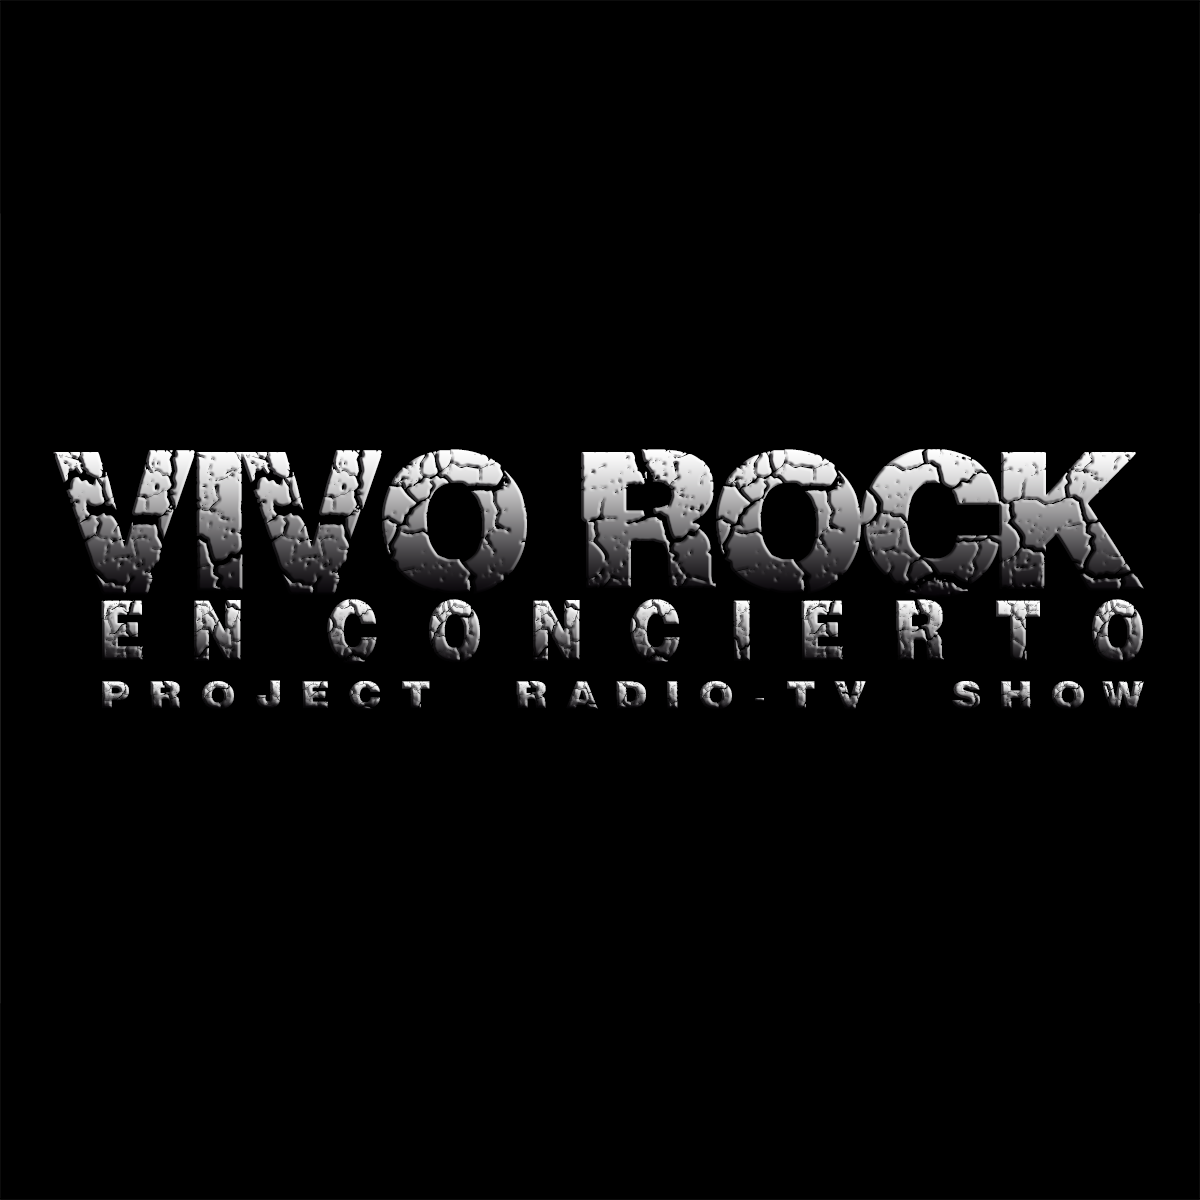 Vivo Rock En Concierto Project Radio-TV Show